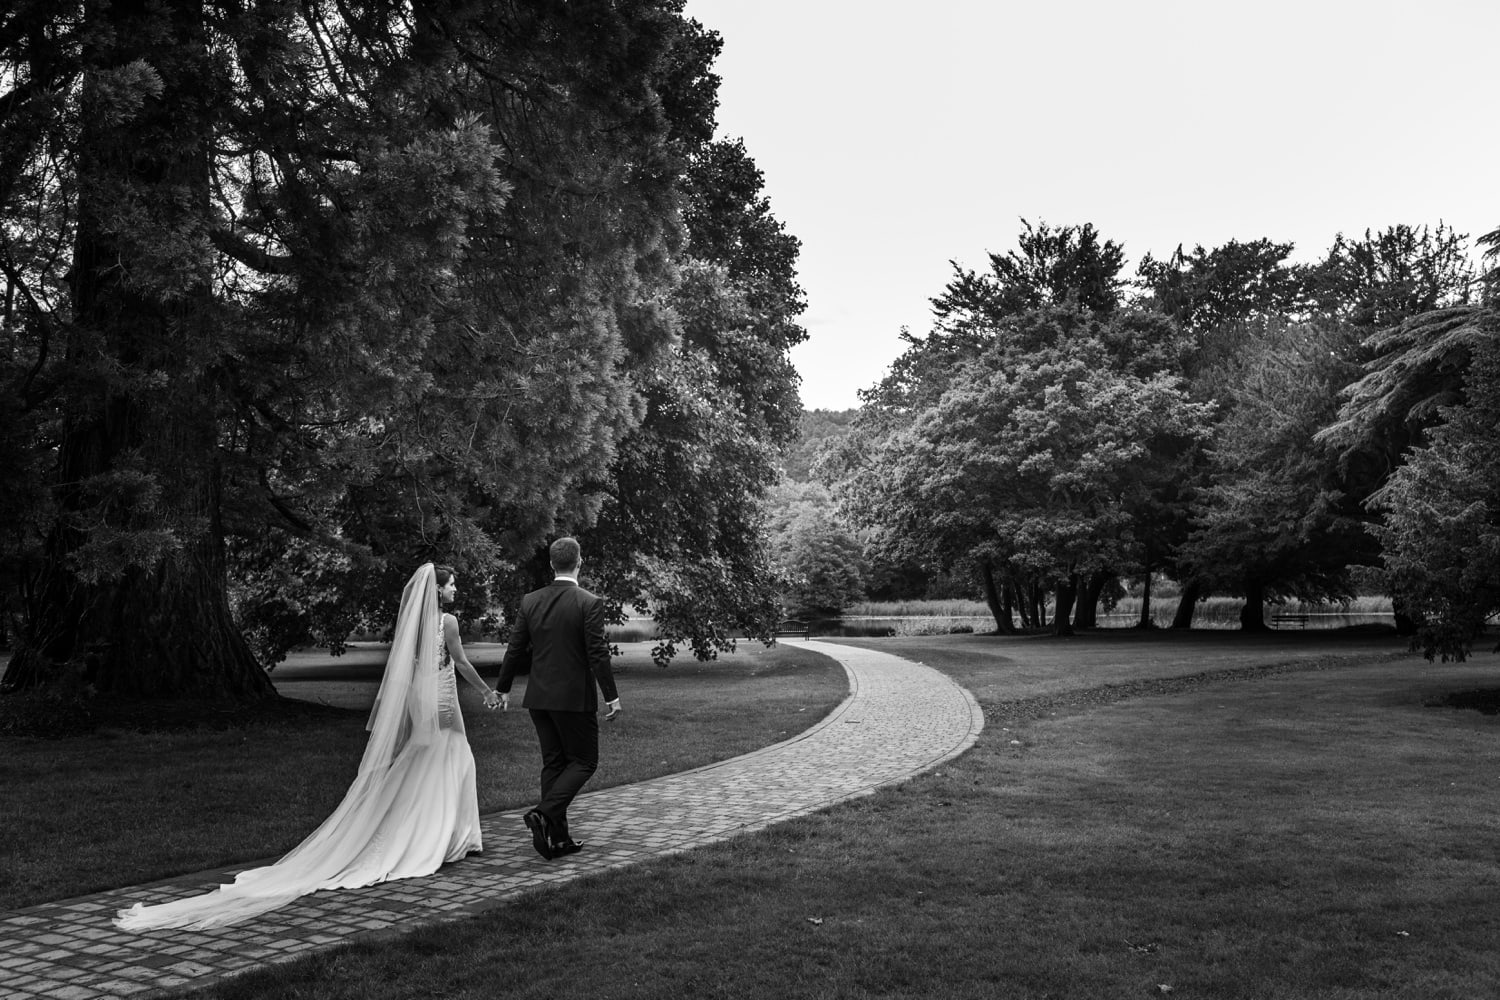 Bride and groom portraits at Hensol Castle in South Wales